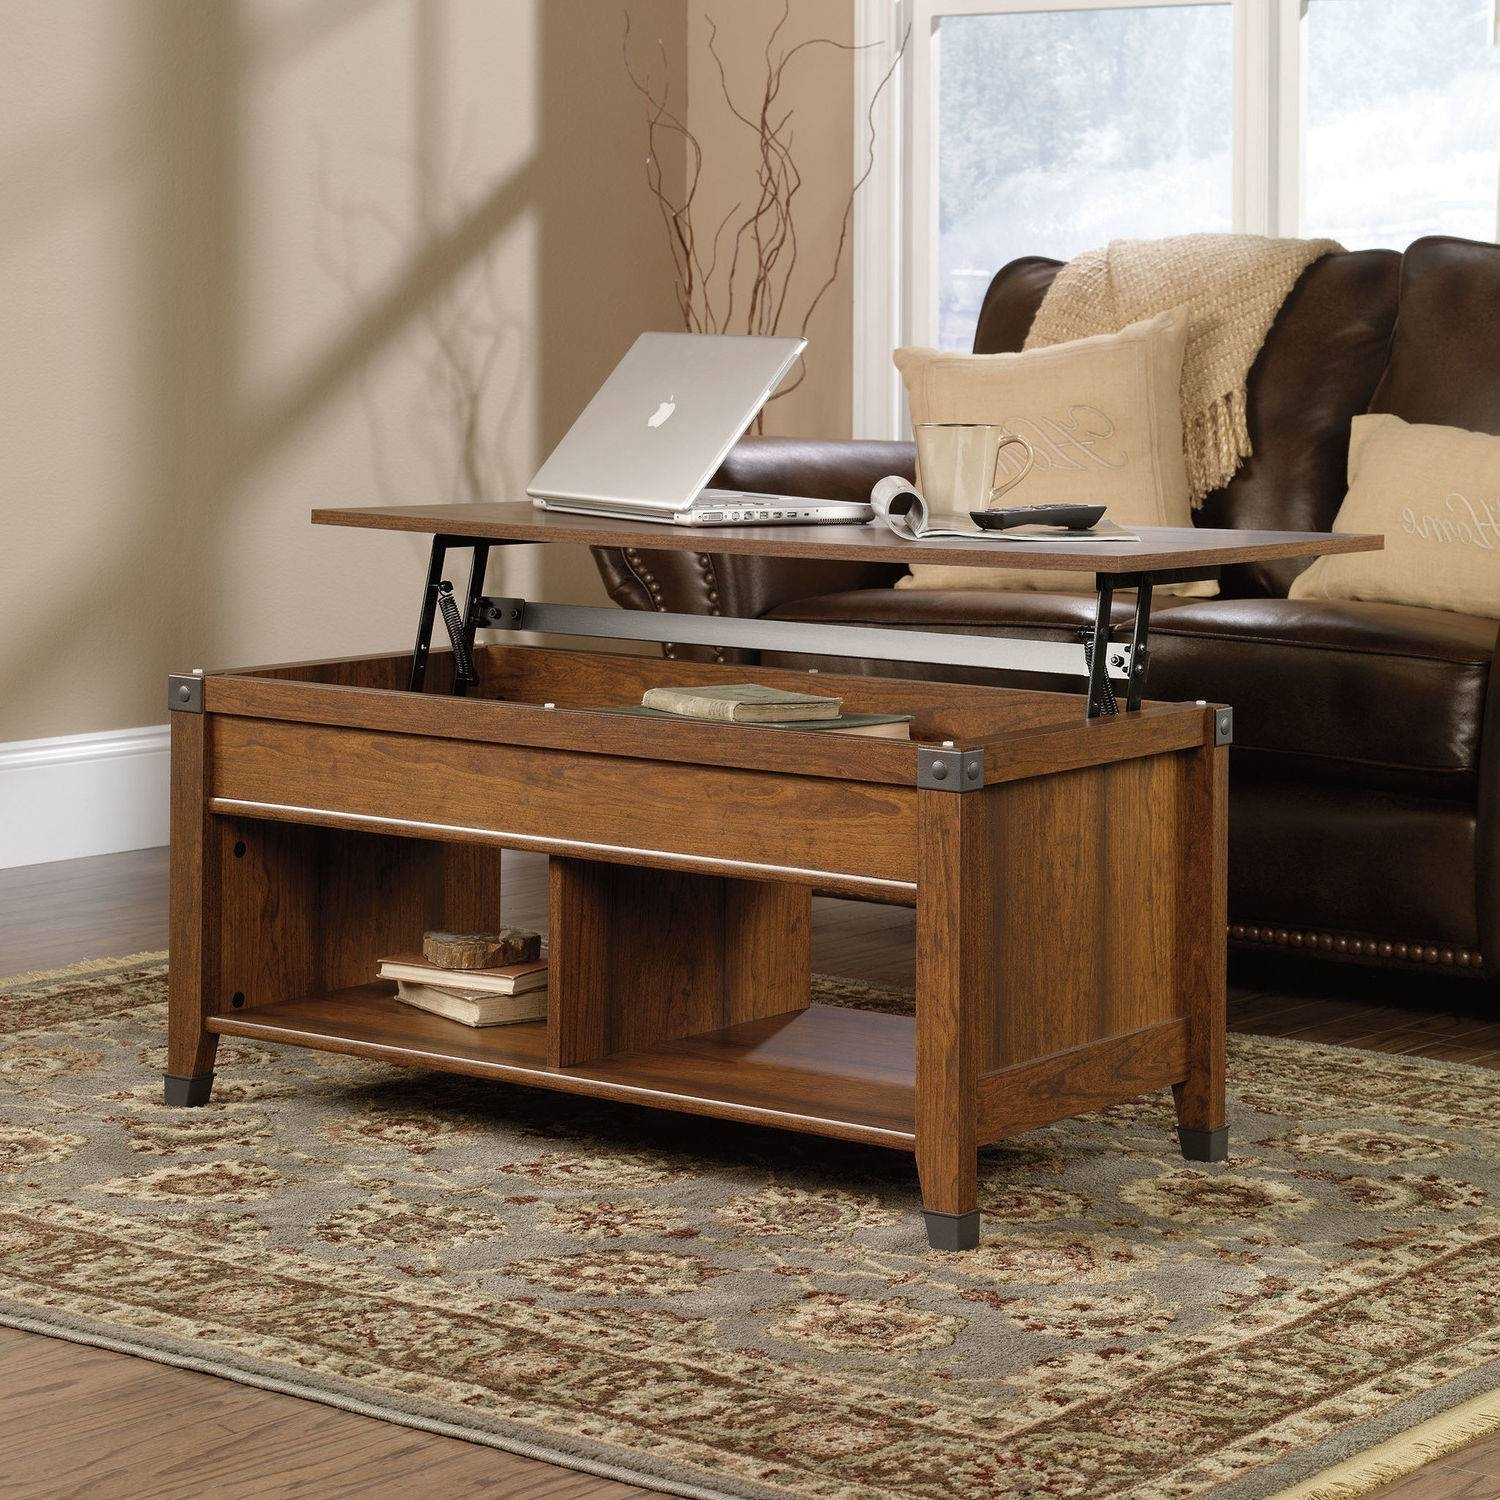 Coffee Table Lift Top Wood Cherry Storage Open Shelves Laptop Pertaining To Opens Up Coffee Tables (View 9 of 30)